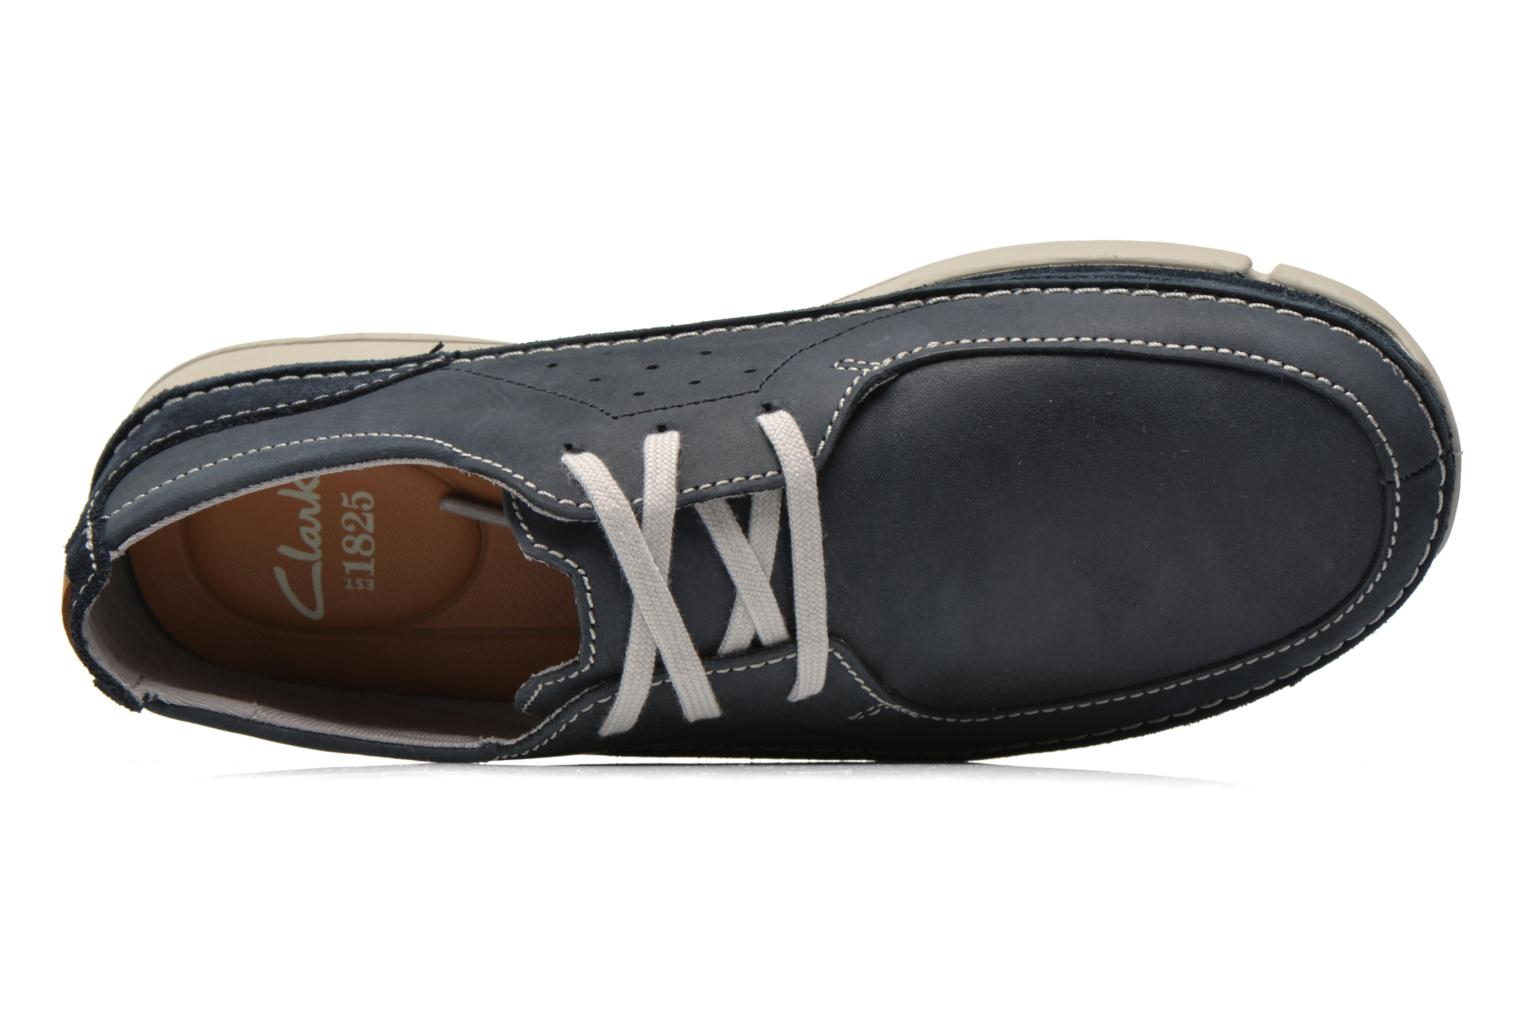 Trikeyon Fly Navy leather